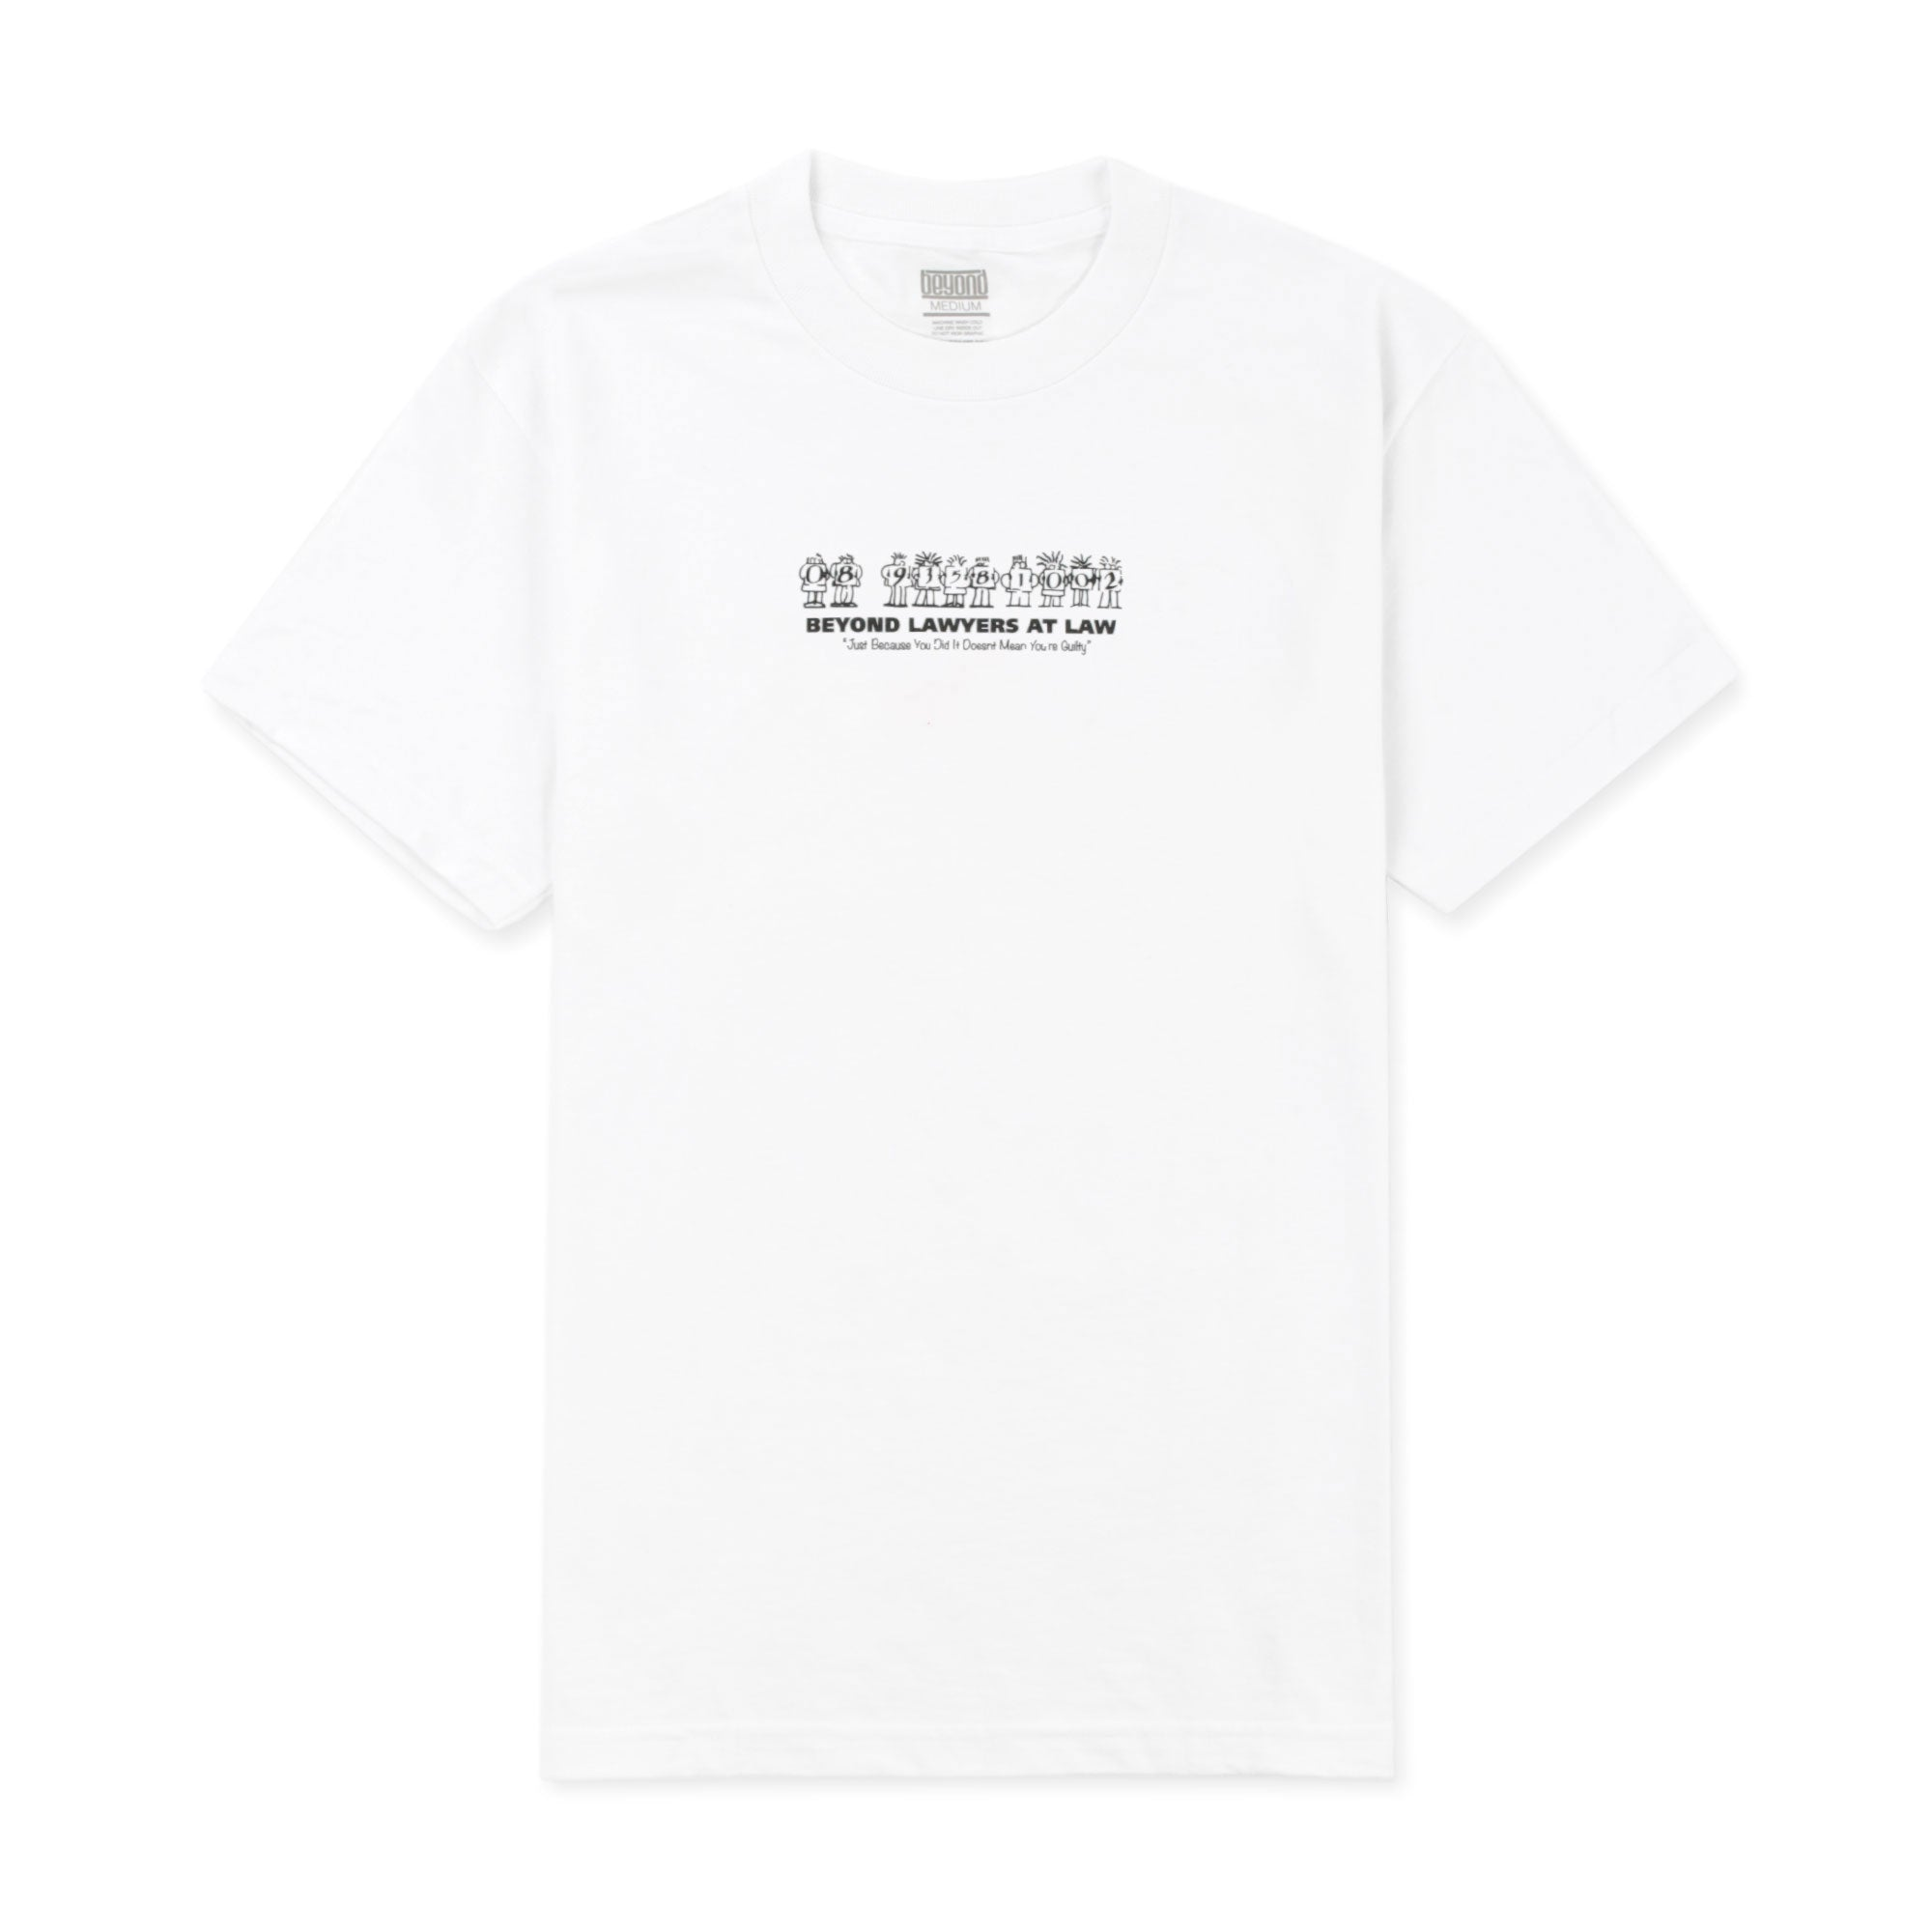 Beyond Lawyers Tee Product Photo #2